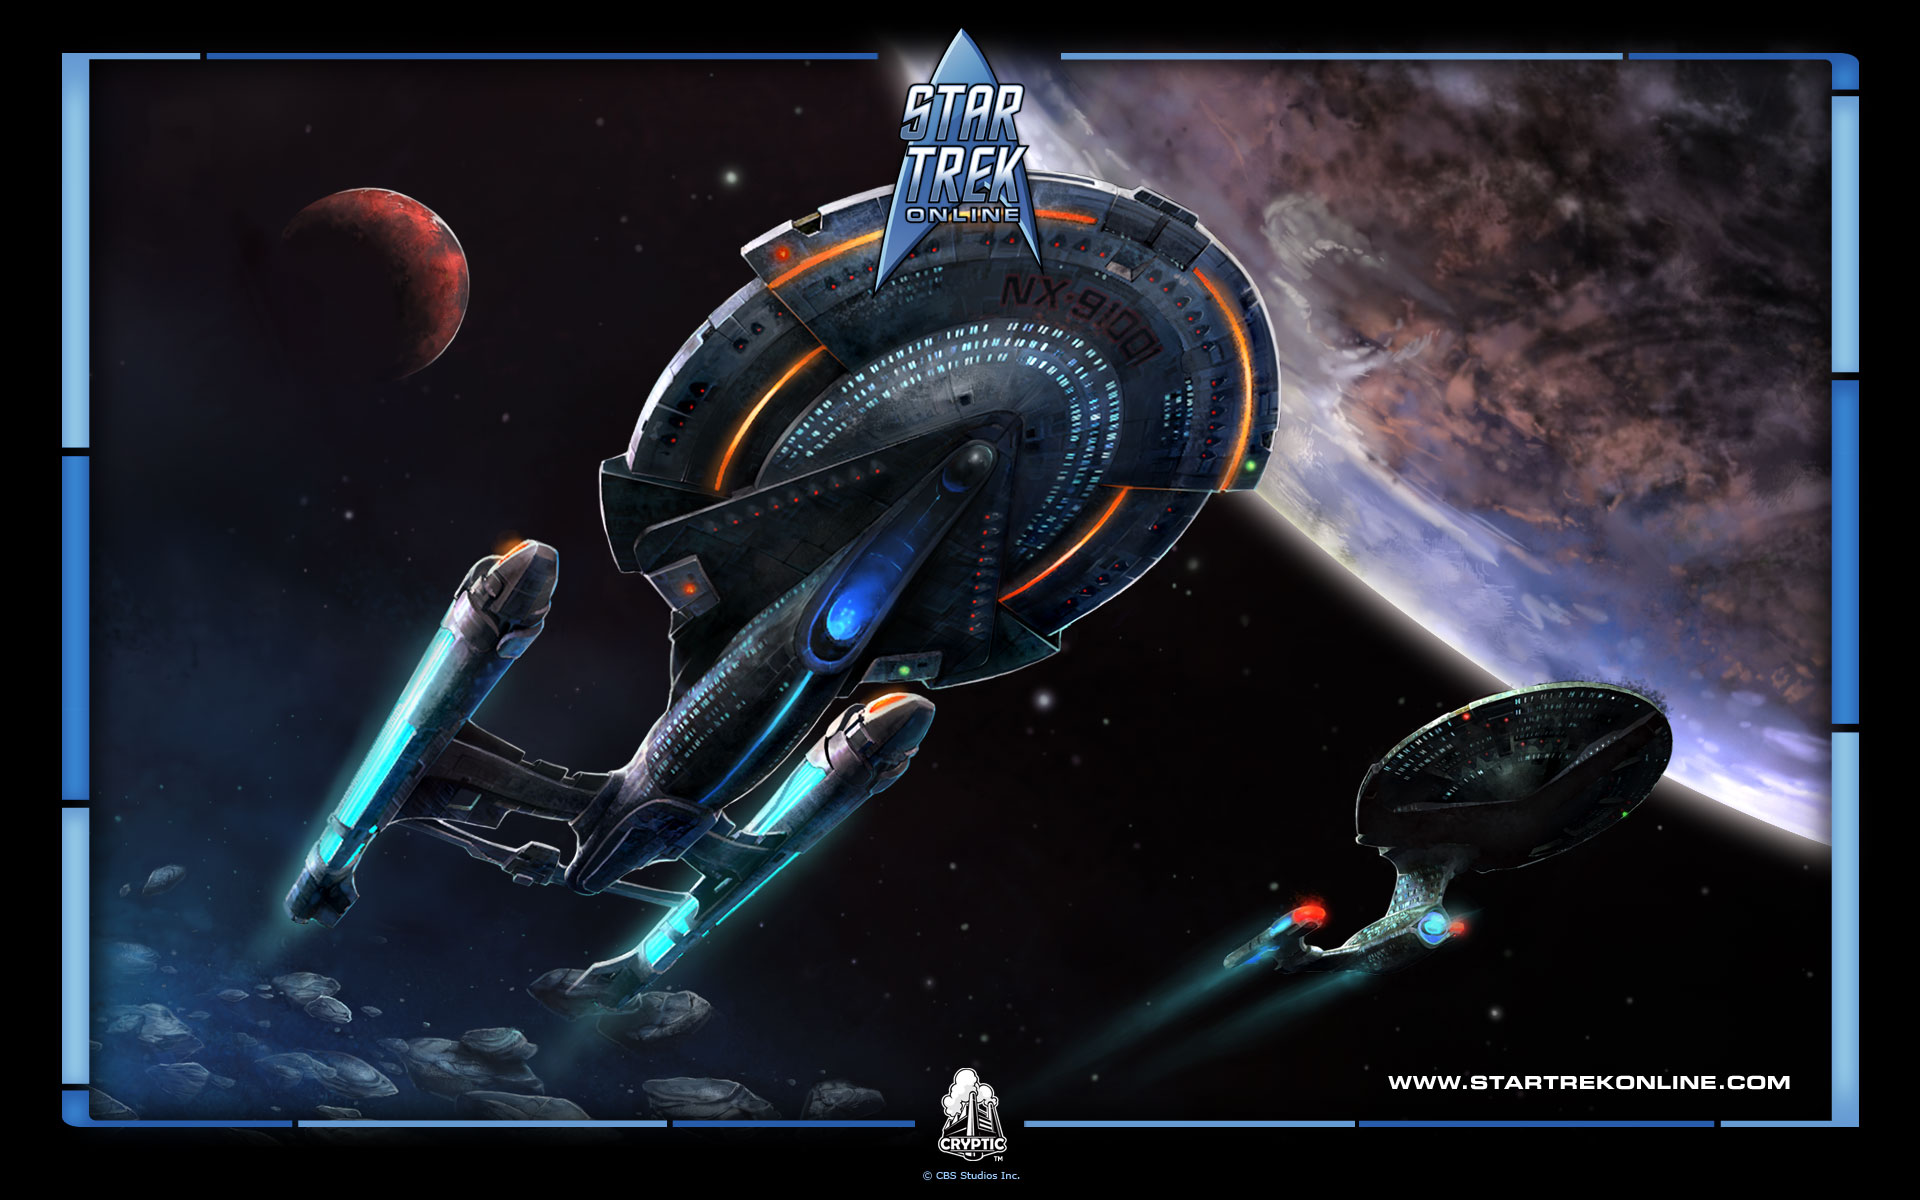 TREKCORE GAMING STAR TREK ONLINE Wallpapers 1920x1200